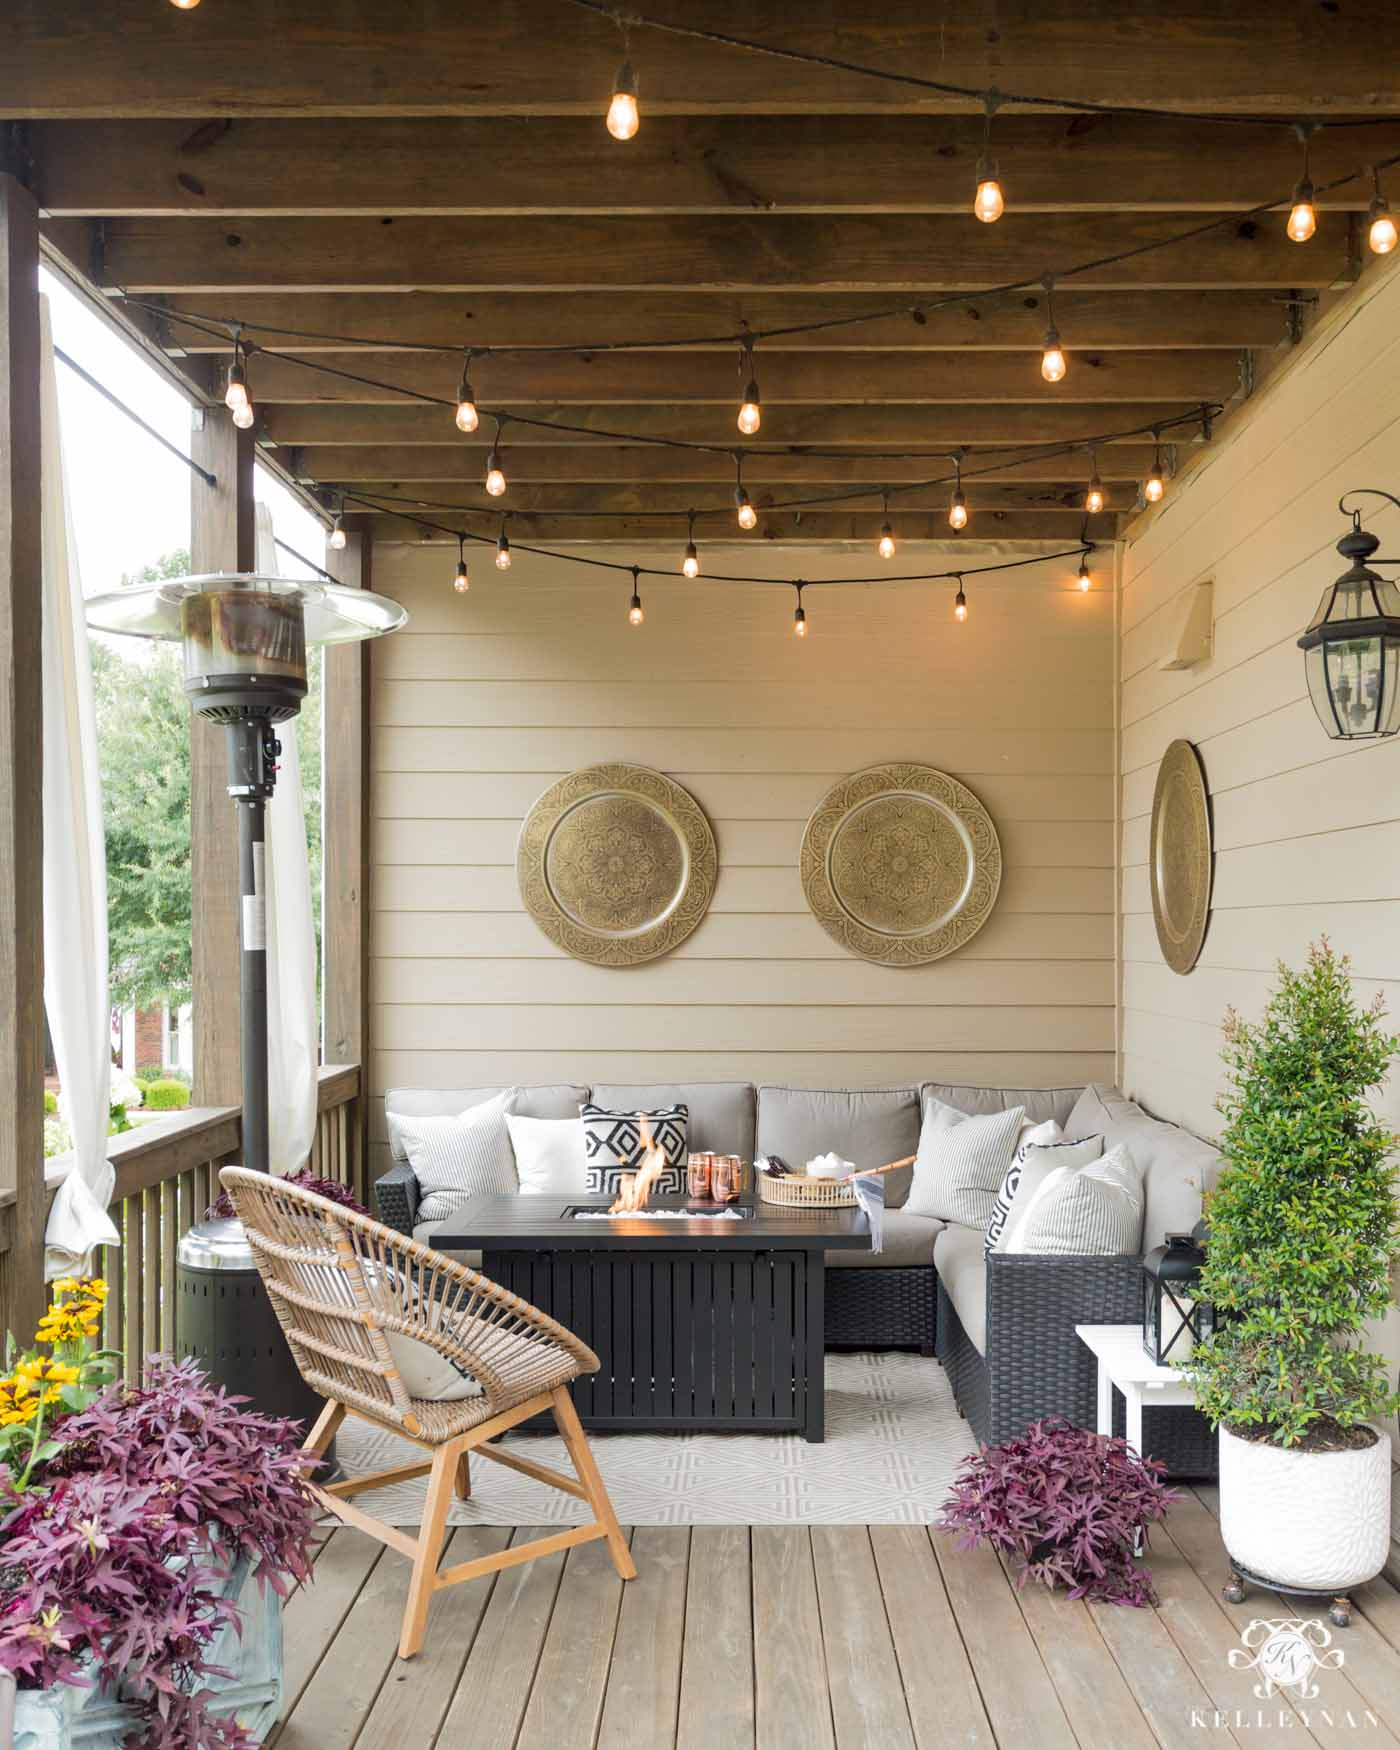 Summer to fall outdoor living decor with twinkle lights, a heat lamp, and fire pit table